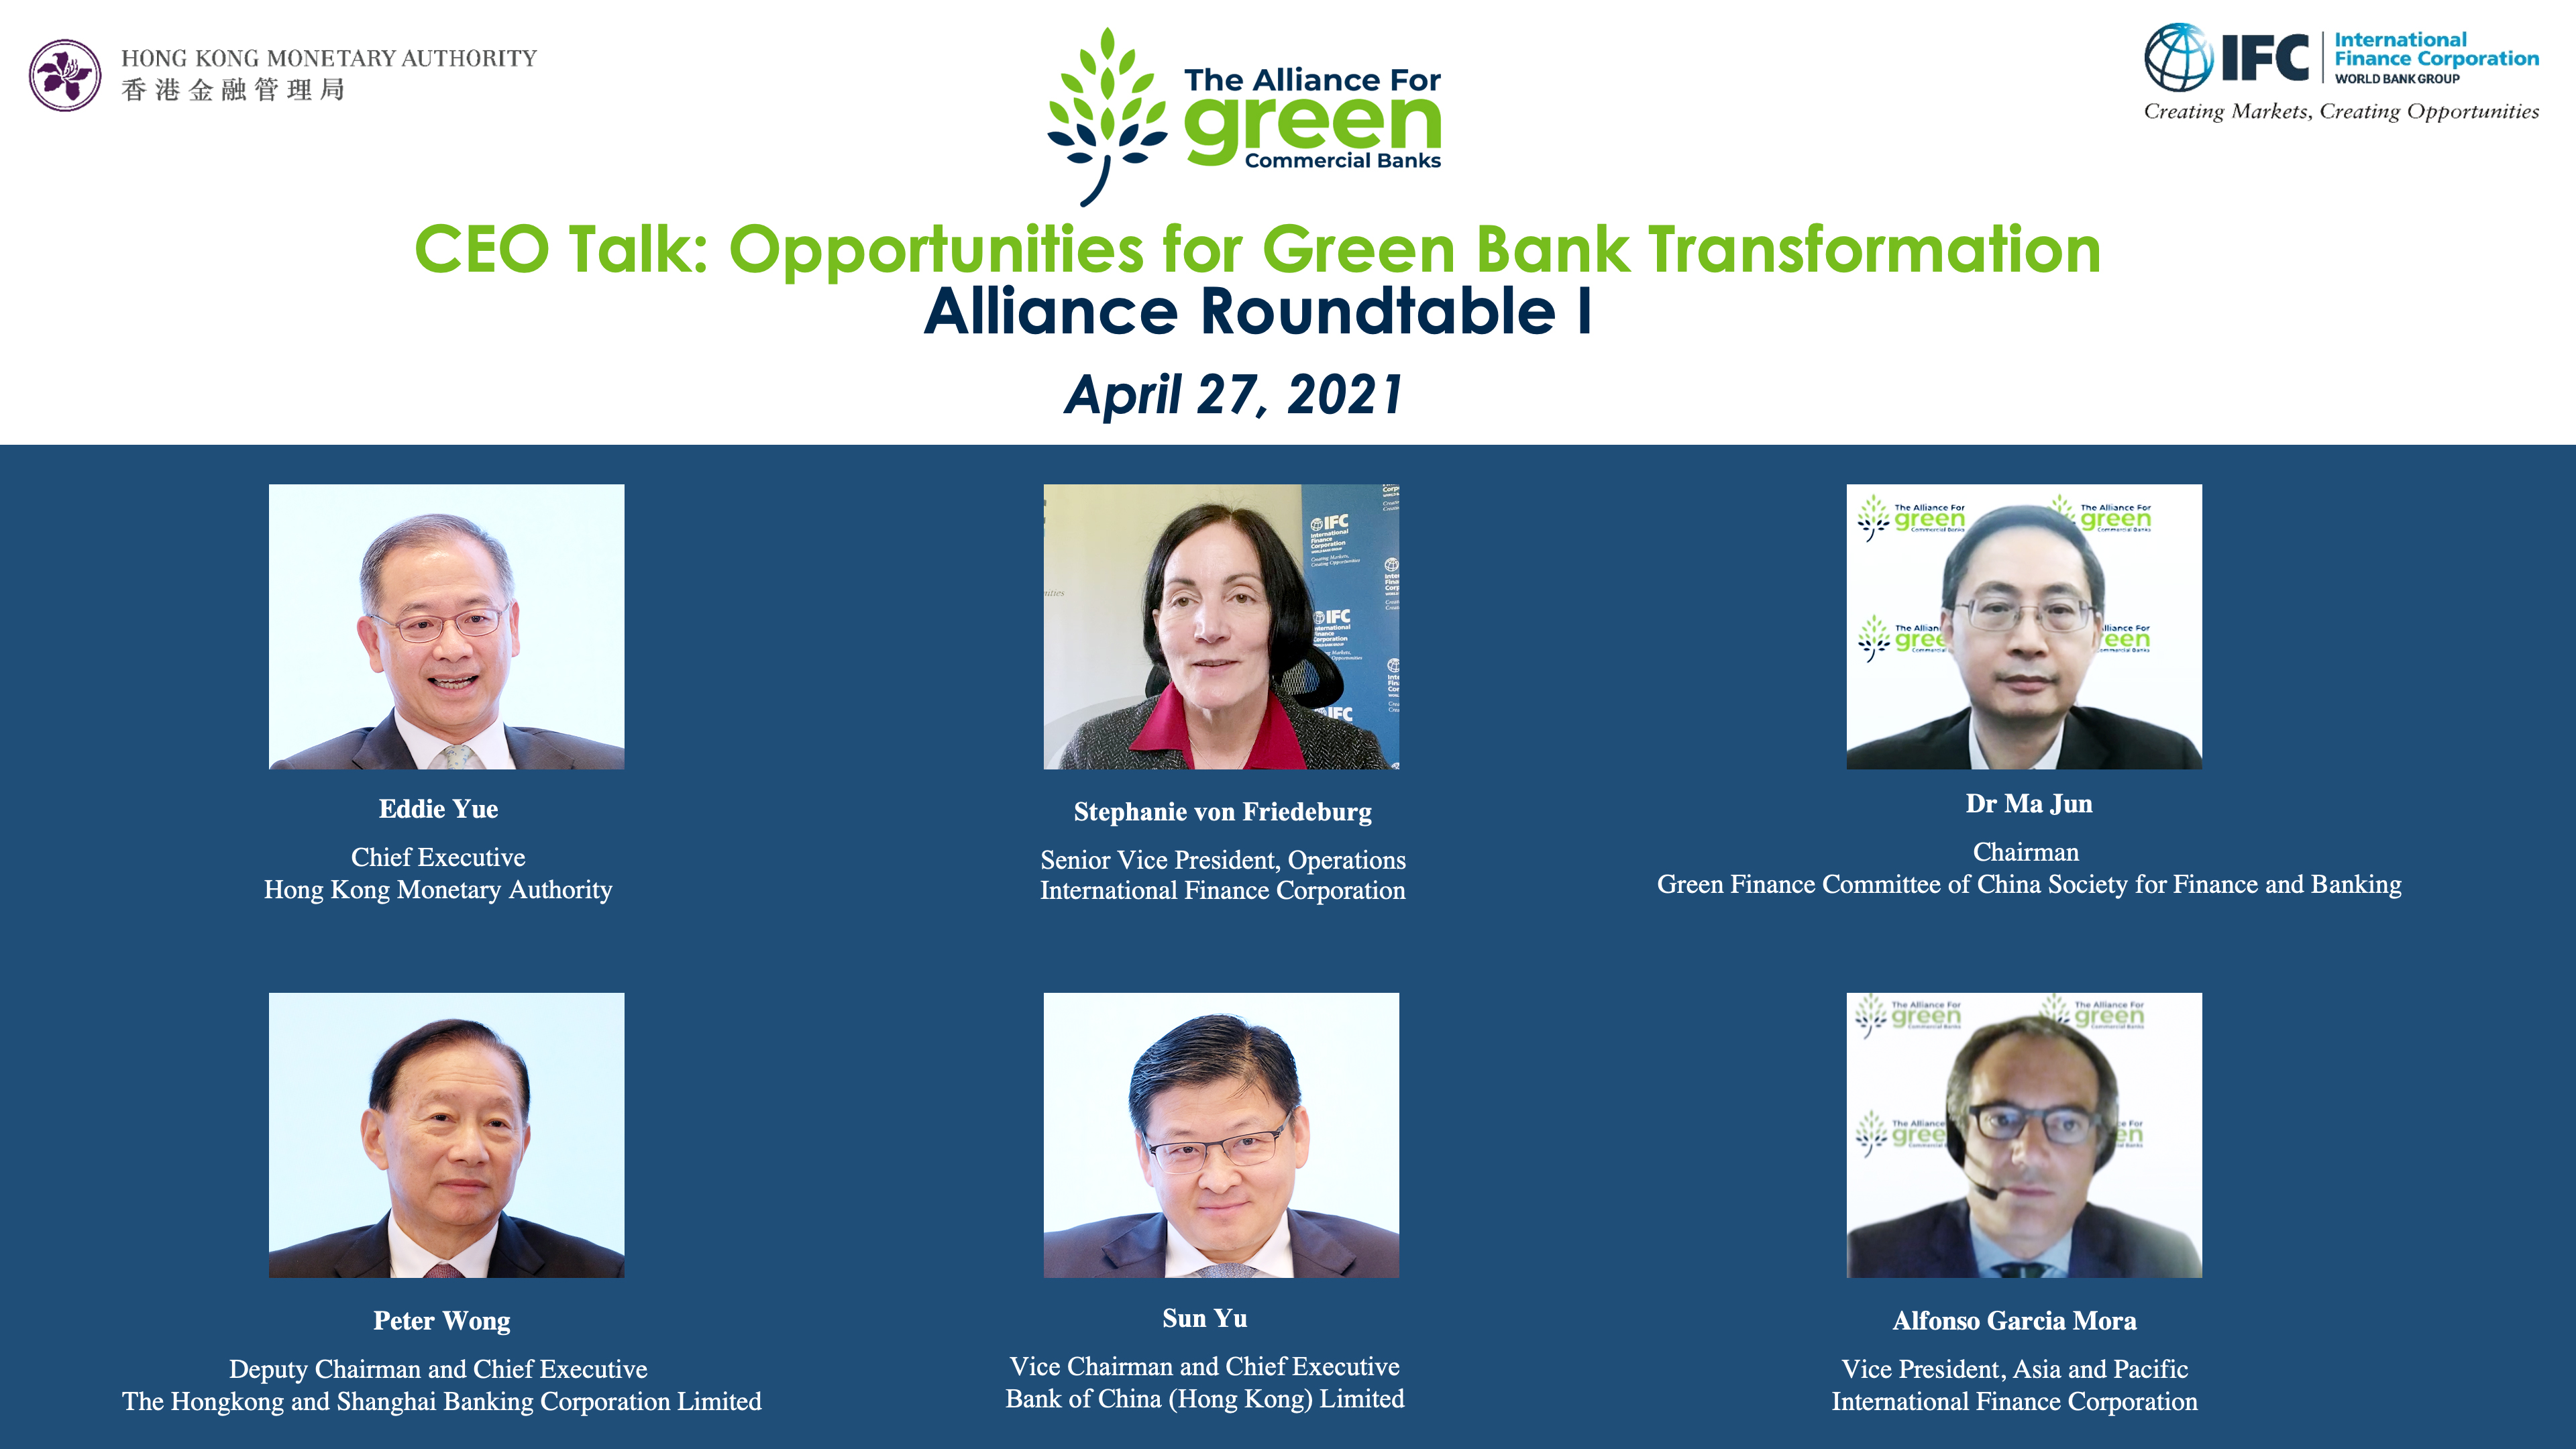 "The Alliance for Green Commercial Banks hosted the first roundtable, ""CEO Talk: Opportunities for Green Bank Transformation"", virtually today (27 April 2021). The event started off by opening remarks from Ms Stephanie von Friedeburg, Senior Vice President, Operations, IFC (centre; first row); and keynotes by Dr Ma Jun, Chairman, Green Finance Committee of China Society for Finance and Banking (right; first row). The roundtable was moderated by Mr Eddie Yue, Chief Executive of the HKMA (left; first row), and was joined by Mr Peter Wong, Deputy Chairman and Chief Executive, The Hongkong and Shanghai Banking Corporation Limited (left; second row); Mr Sun Yu, Vice Chairman and Chief Executive, Bank of China (Hong Kong) Limited (centre; second row); and Mr Alfonso Garcia Mora, Vice President, Asia and Pacific, IFC (right; second row)."